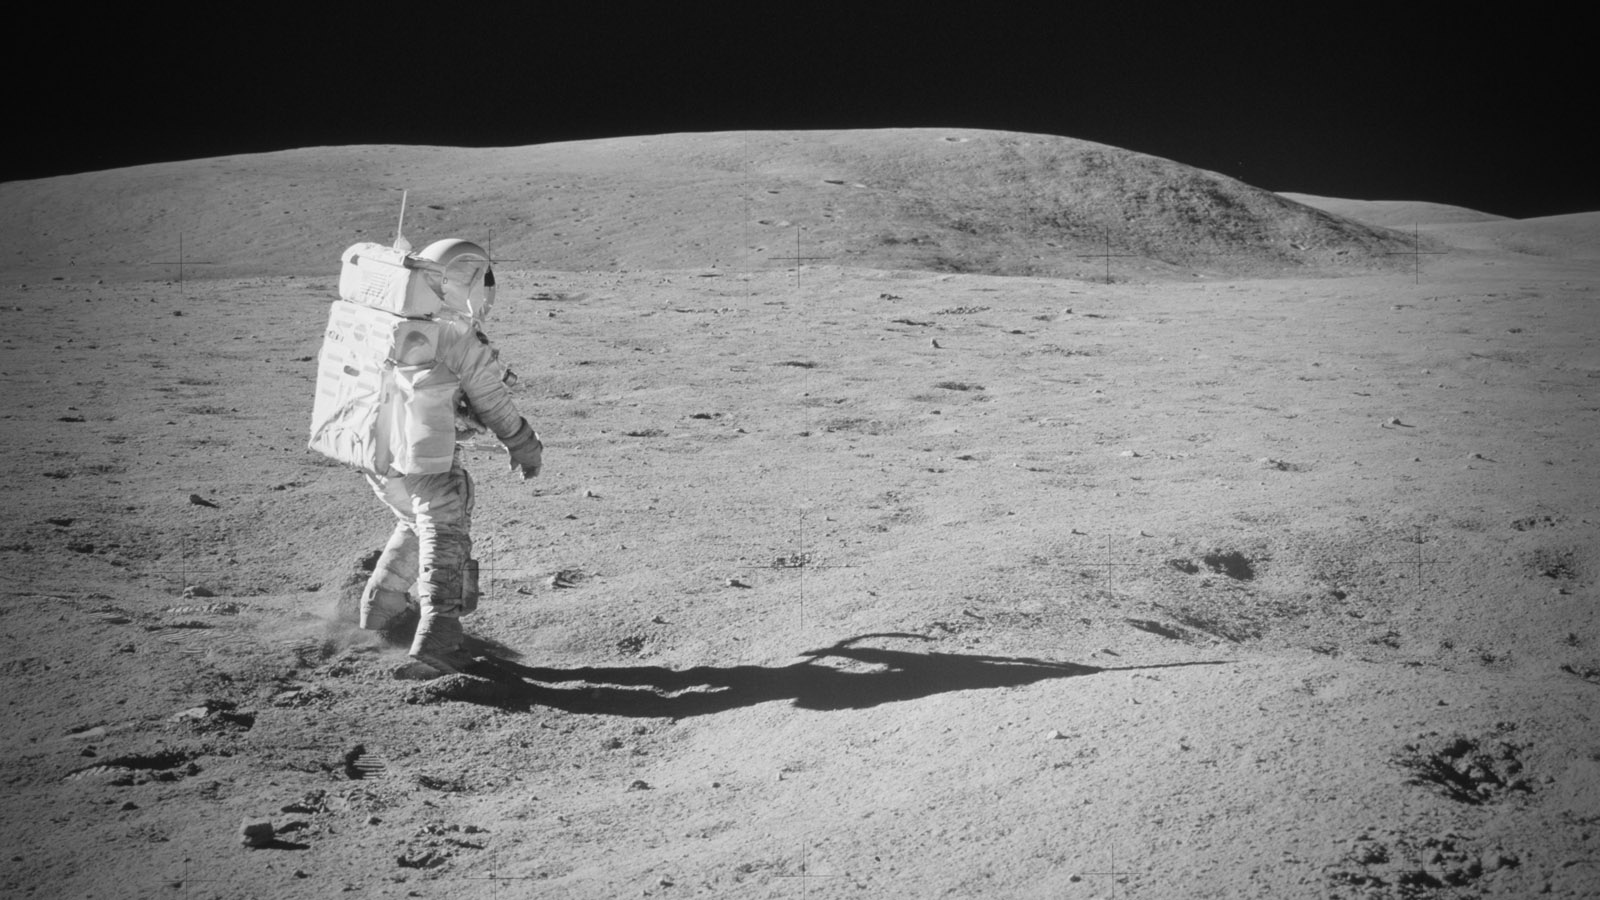 Charlie Duke on the Moon. (image courtesy NASA)